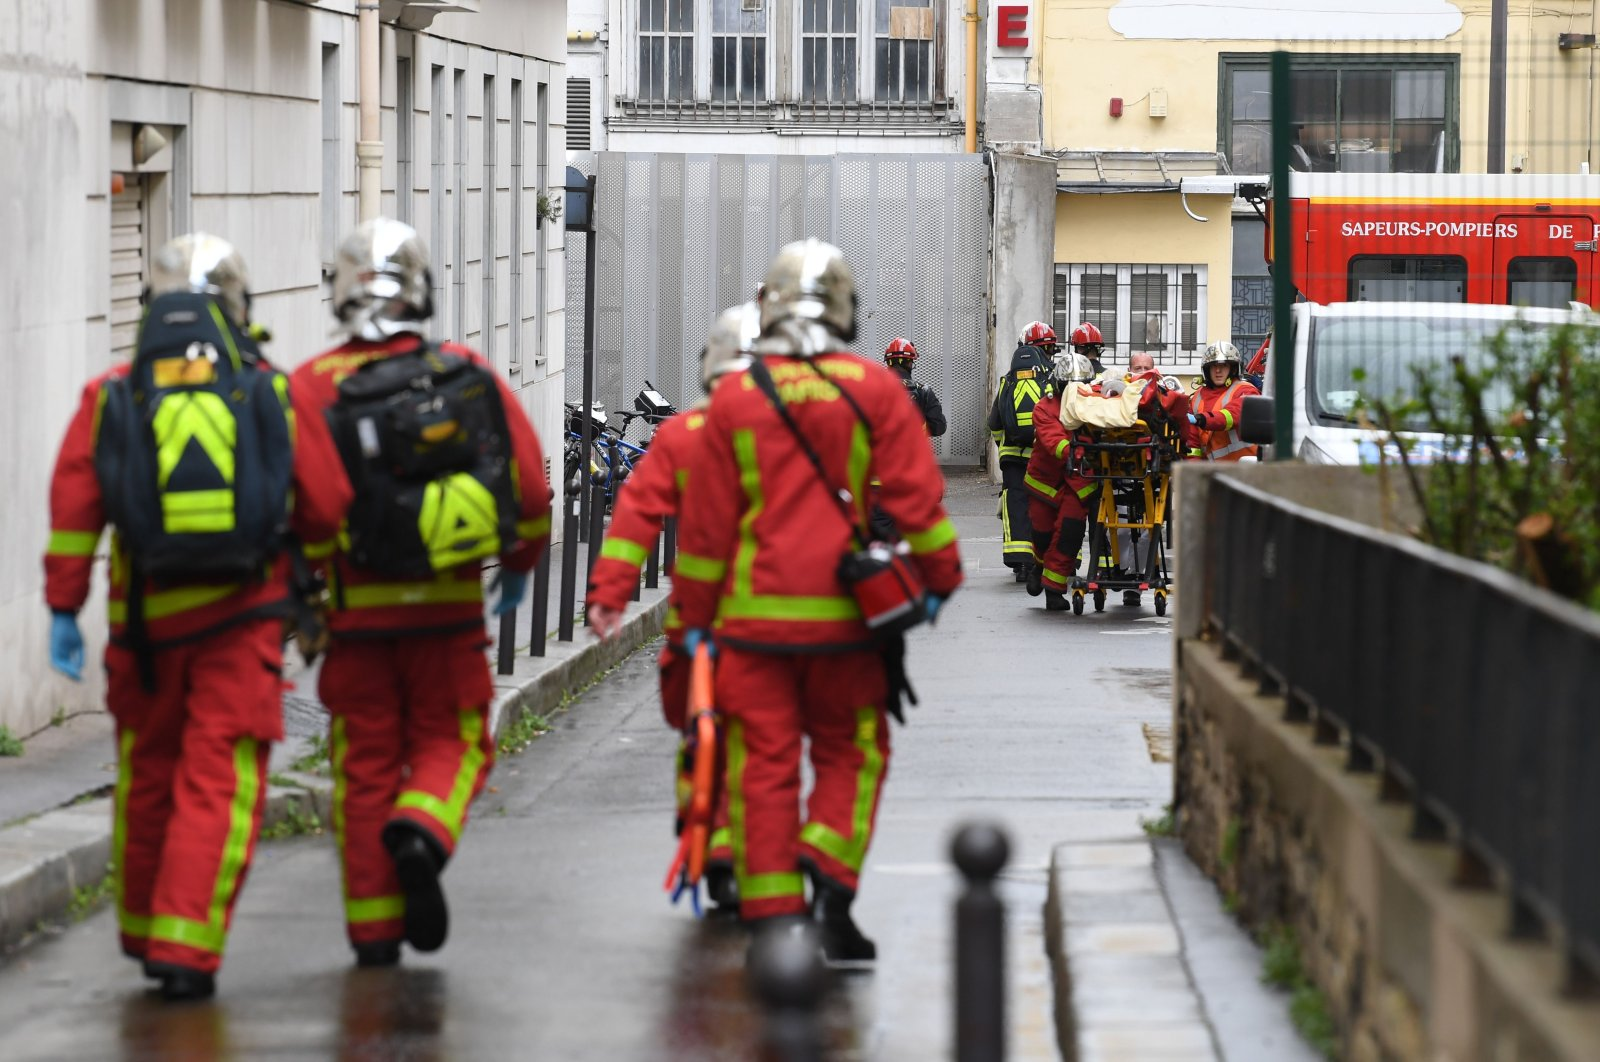 French firefighters move an injured person into an ambulance near the former offices of the French satirical magazine Charlie Hebdo, Paris, France, Sept. 25, 2020. (AFP Photo)